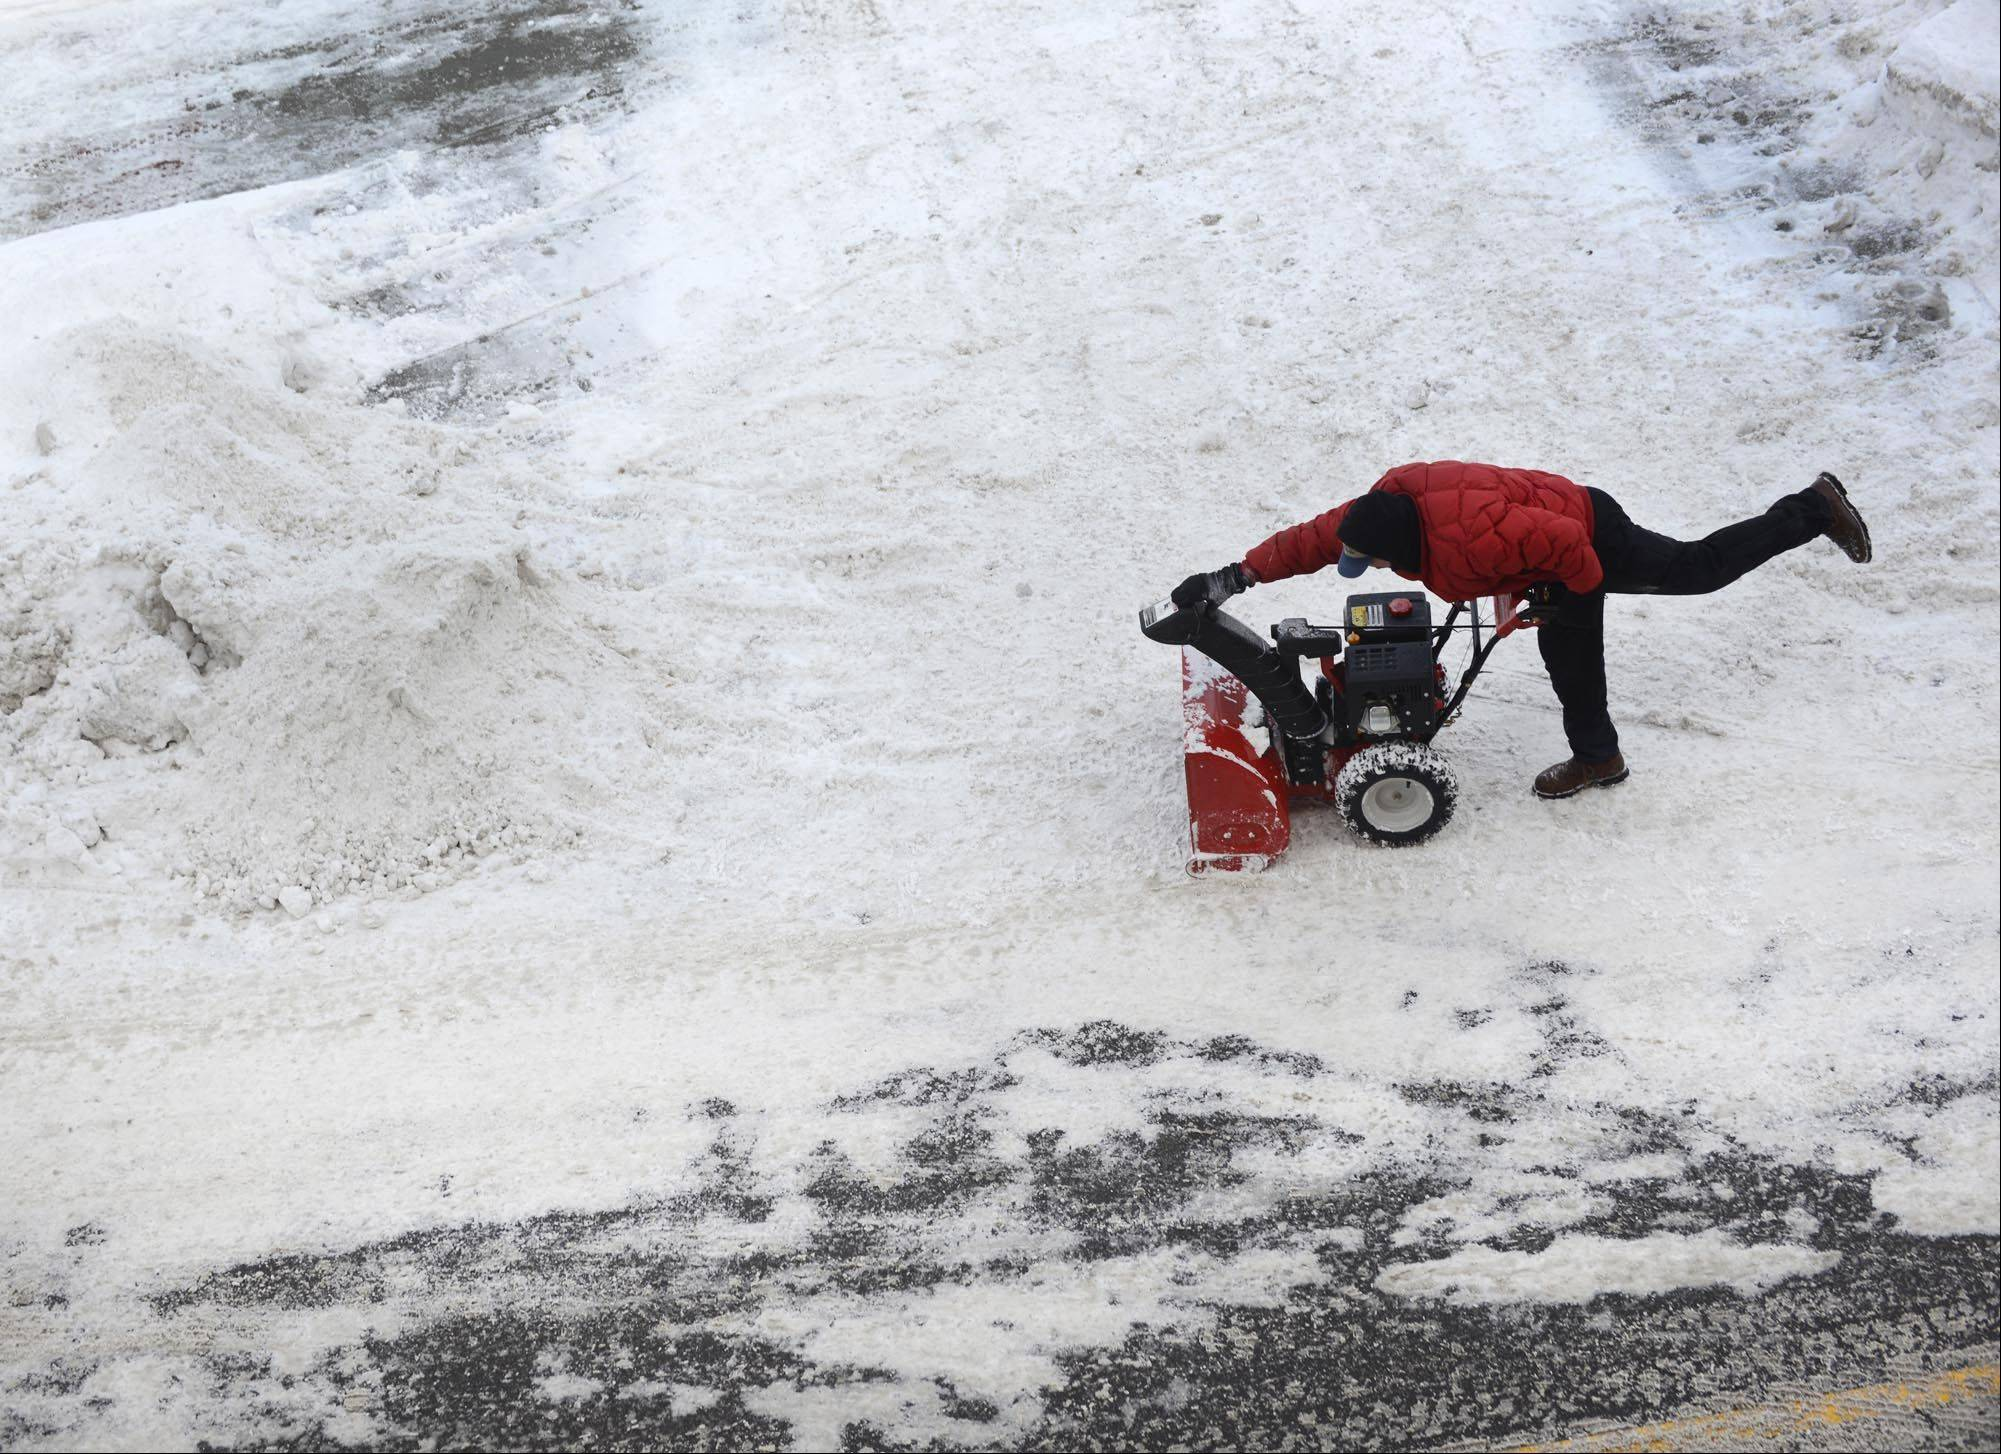 John Starks/jstarks@dailyherald.comJohn Hedlund, of Elgin, adjusts the chute of his snowblower while he clears the parking lot of the Art Space Lofts on Fulton Street in downtown Elgin Tuesday. Temperatures were warmer than Monday's -42 windchill, but he said he didn't notice.